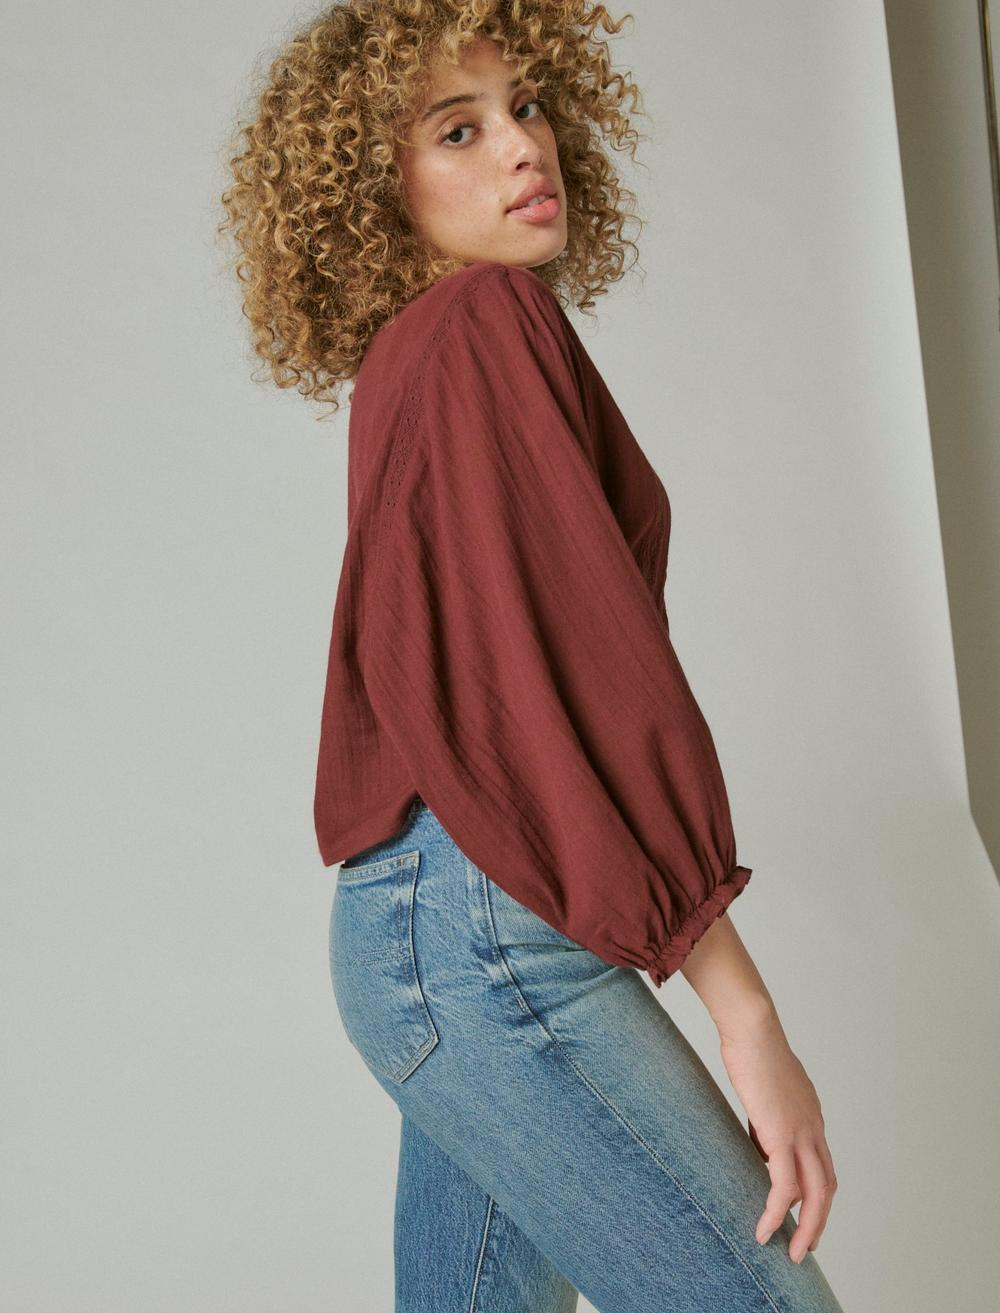 EMBROIDERED ROUND NECK BOXY BLOUSE, image 3